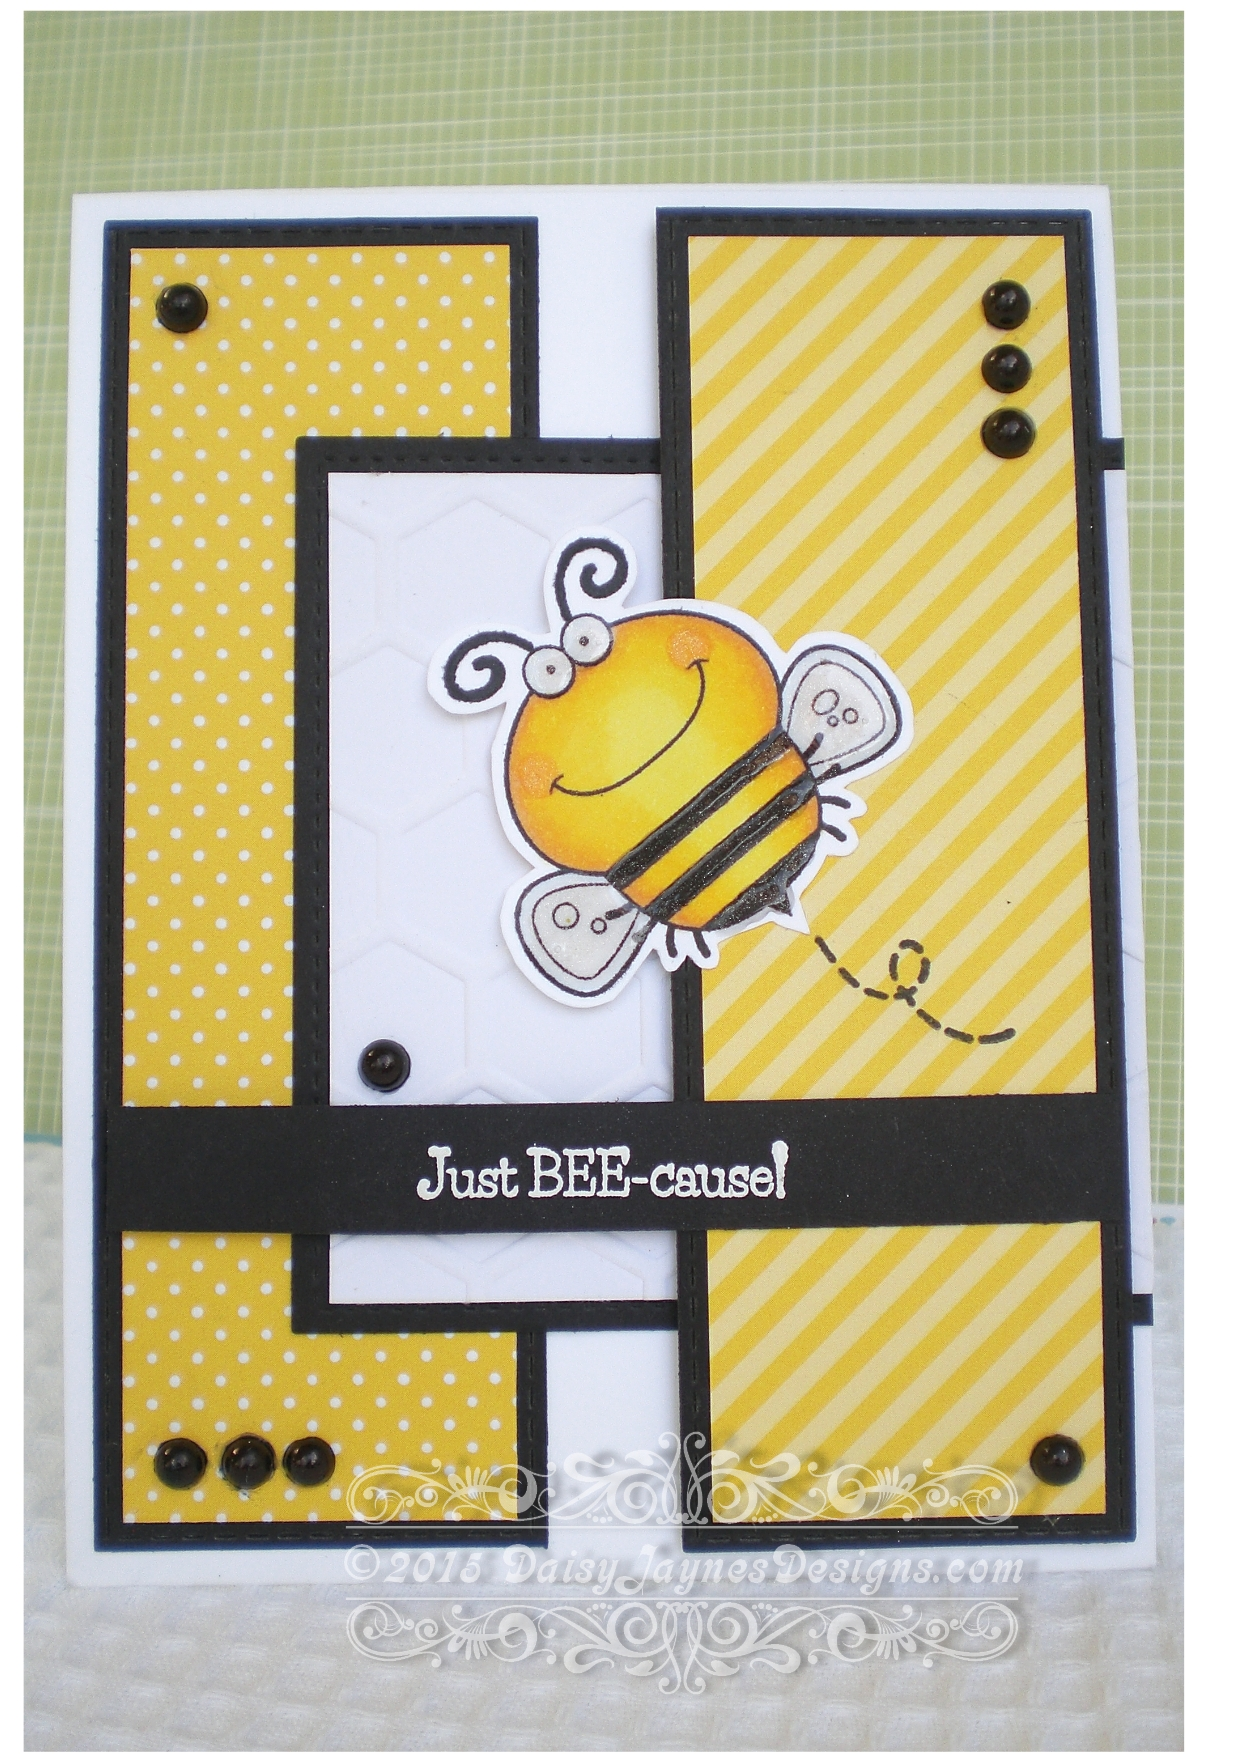 Just The Bee S Knees Boys Bathroom Inspiration And A Mood: Card Share #9 Your Next Stamp Card Challenge